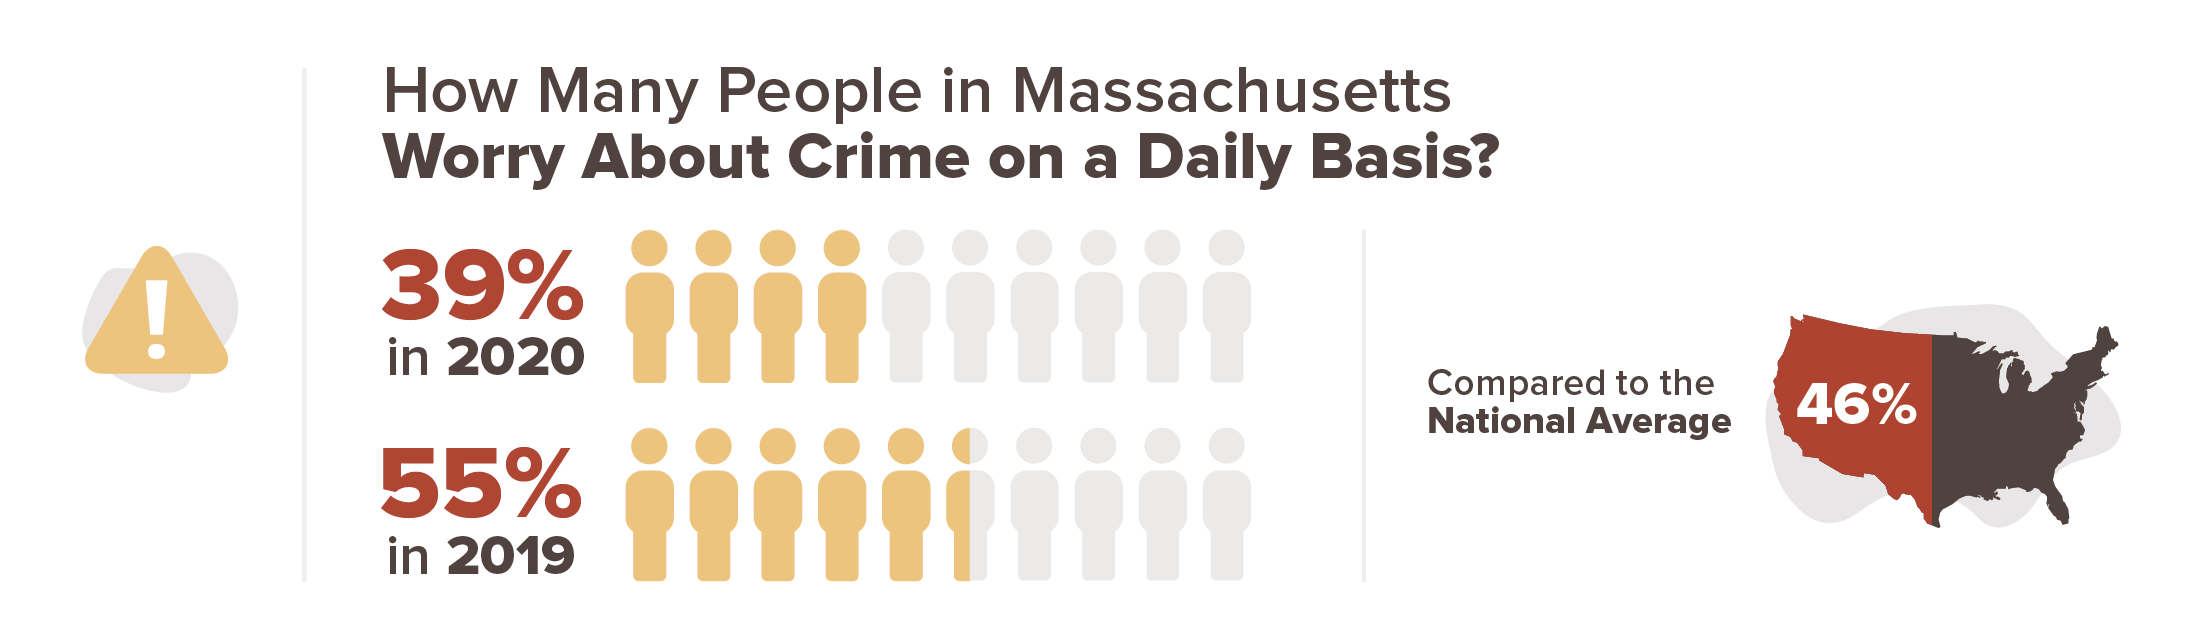 39% of Massachussets' residents worry about crime on a daily basis in 2020 compared to 55% in 2019.